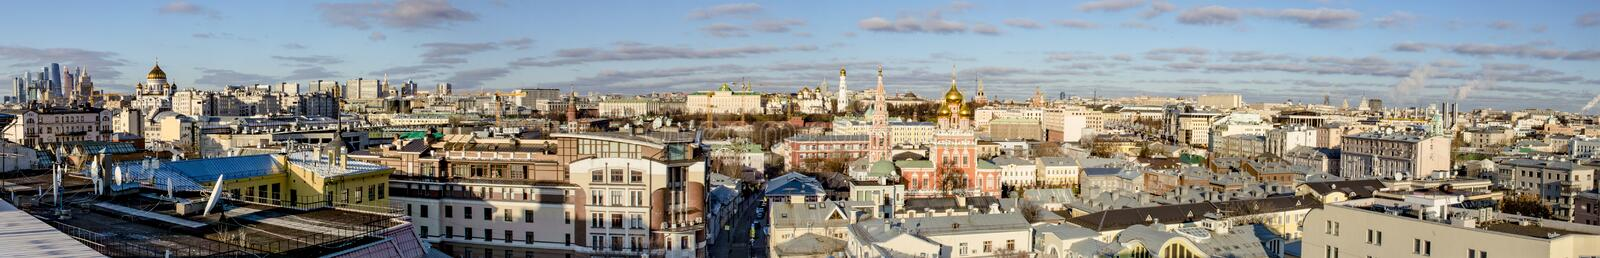 Panoramic view of the center of Moscow streets and houses from a bird`s flight on a clear winter day stock photos